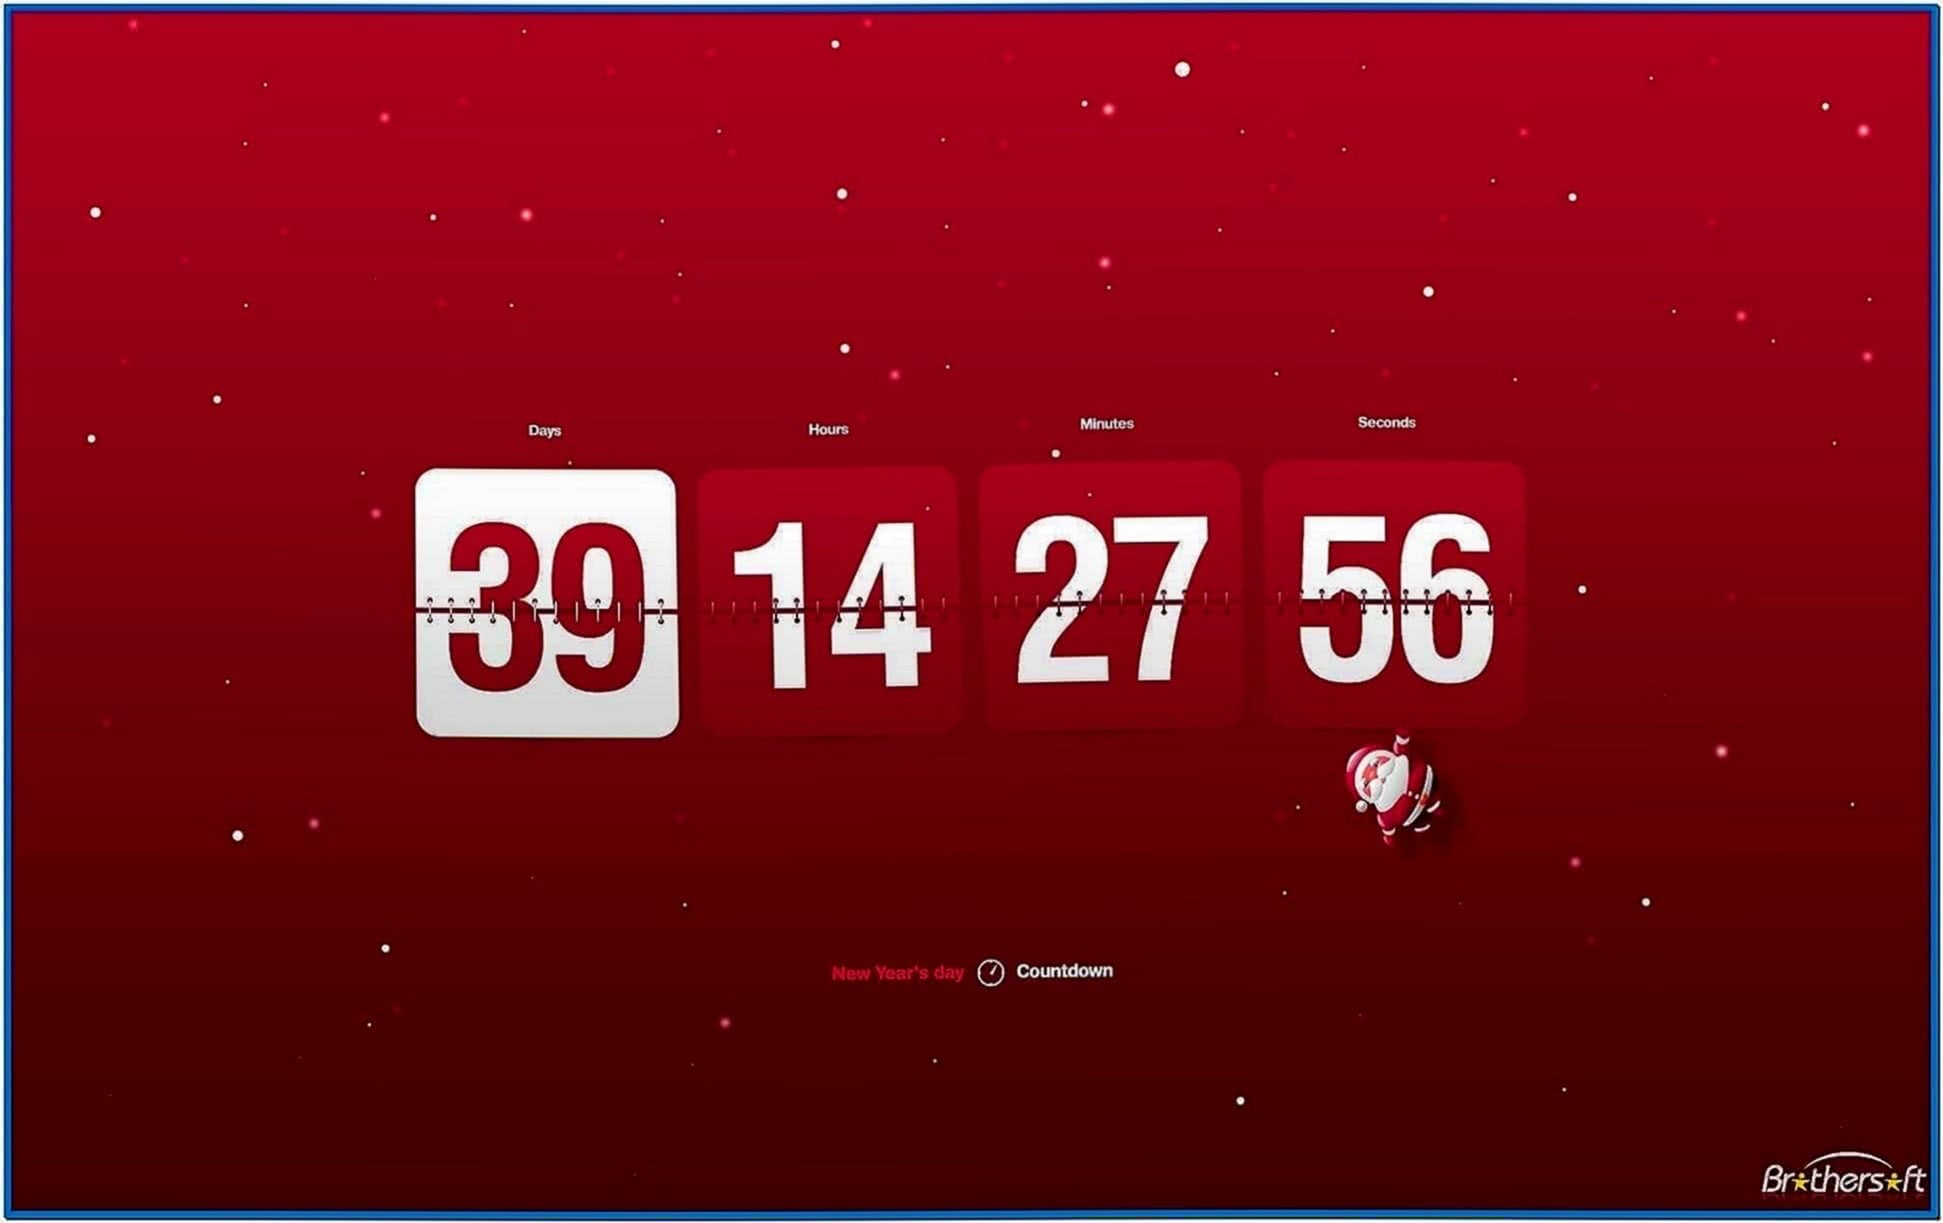 ... - Description 3d Living Christmas Countdown Is A Stunning 3d Live